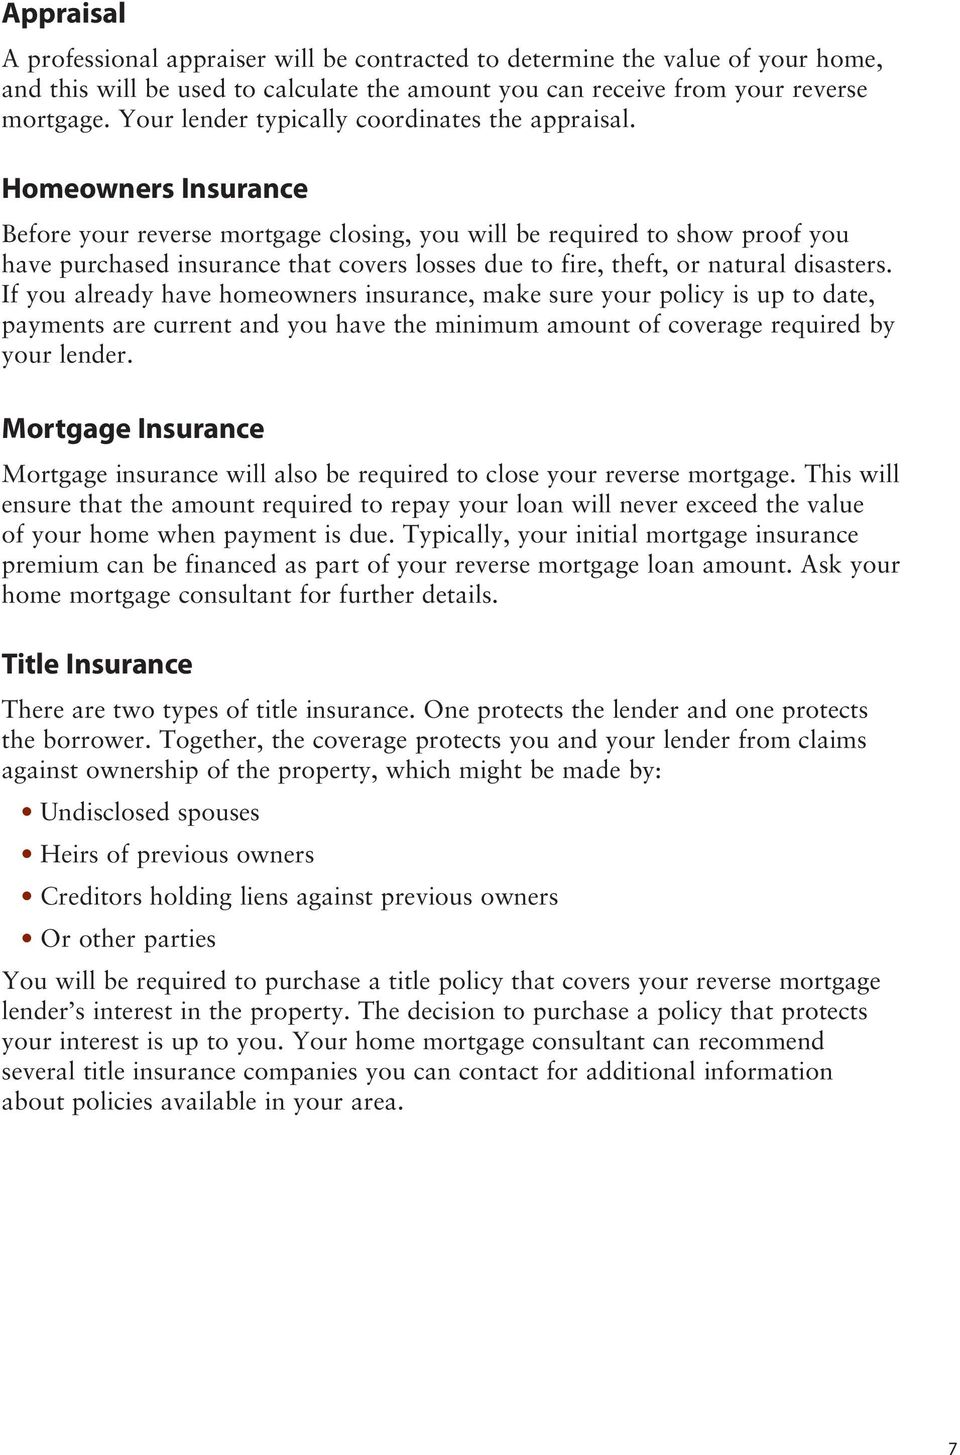 Homeowners Insurance Before your reverse mortgage closing, you will be required to show proof you have purchased insurance that covers losses due to fire, theft, or natural disasters.